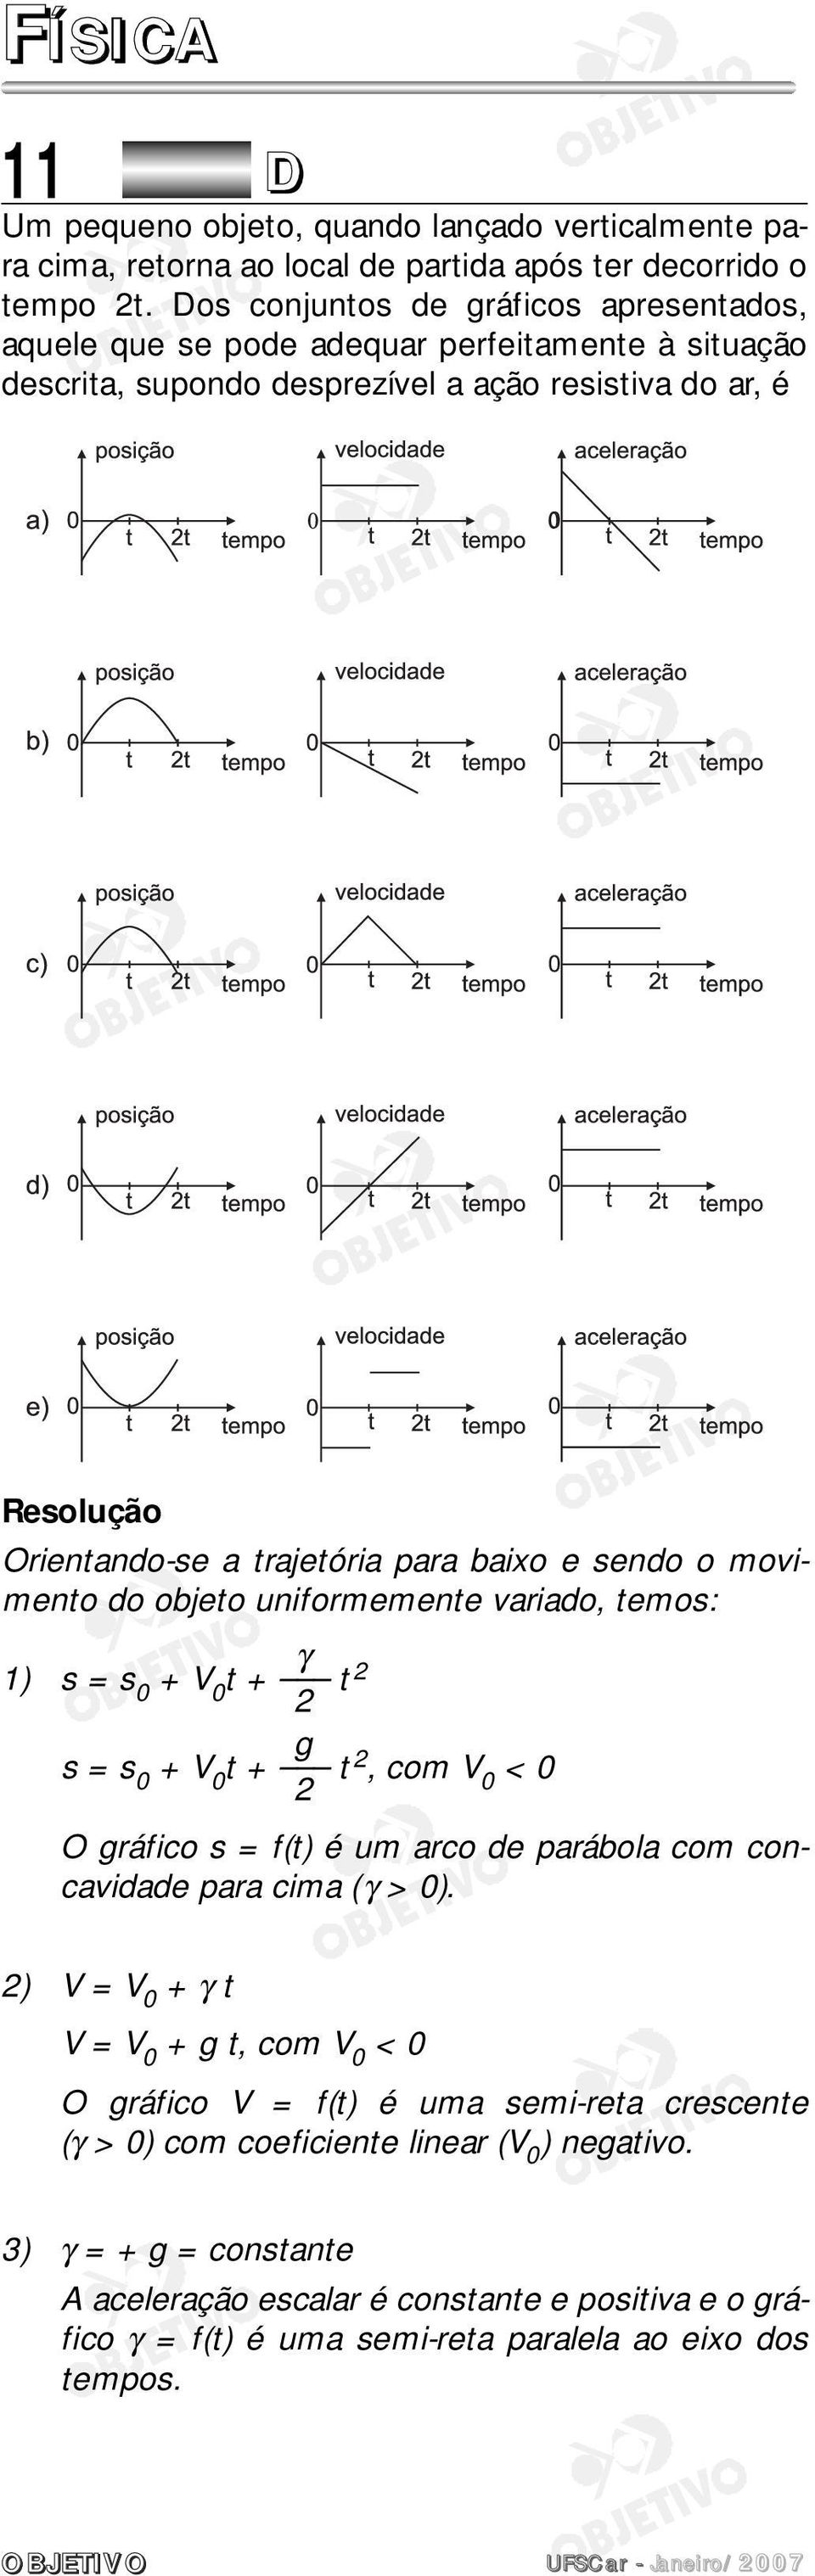 movimento do objeto uniformemente variado, temos: γ 1) s = s 0 + V 0 t + t 2 2 g s = s 0 + V 0 t + t 2, com V 0 < 0 2 O gráfico s = f(t) é um arco de parábola com concavidade para cima (γ > 0).